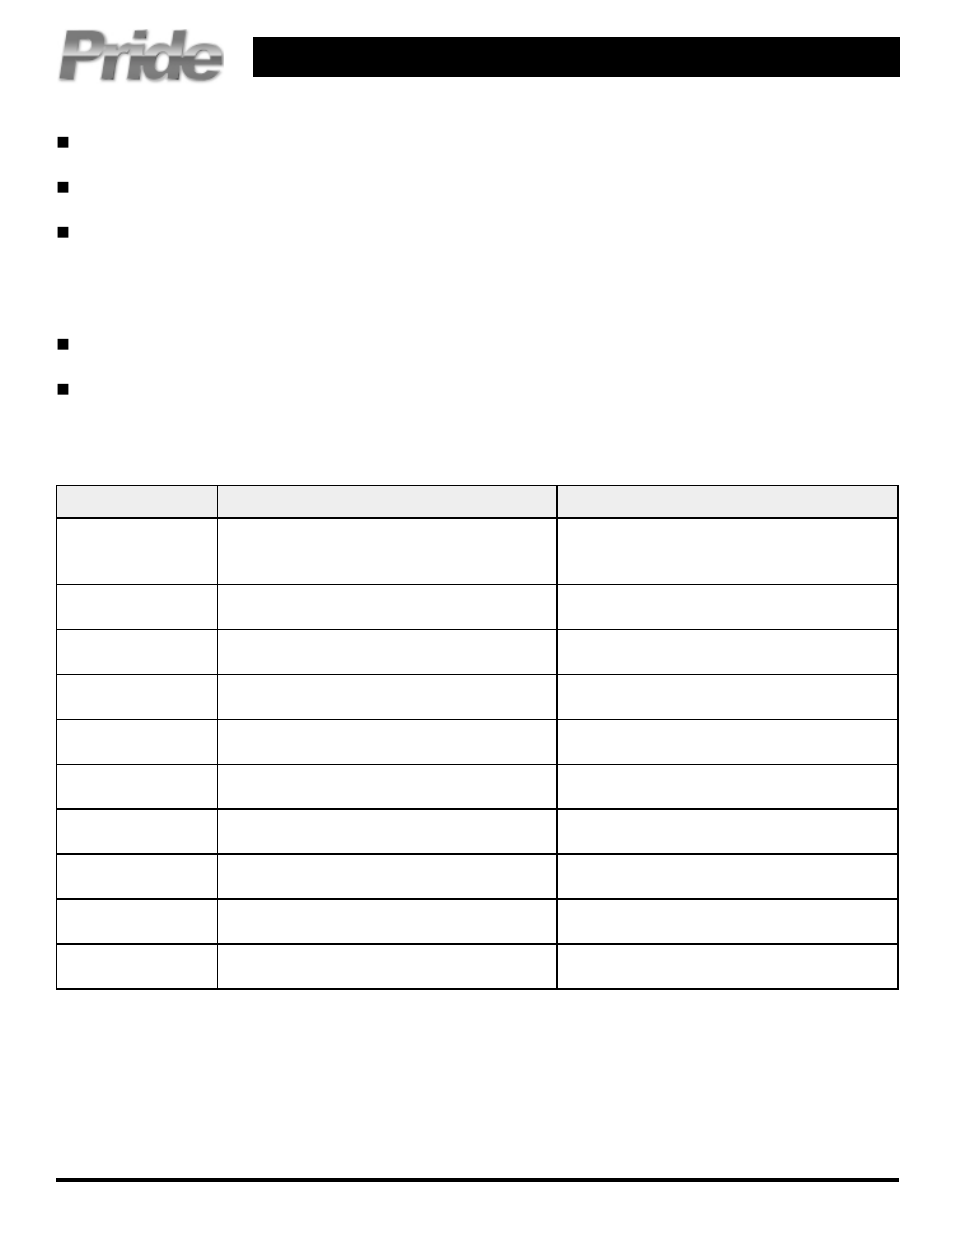 Pride Mobility Jet 3 Ultra User Manual Page 2 4